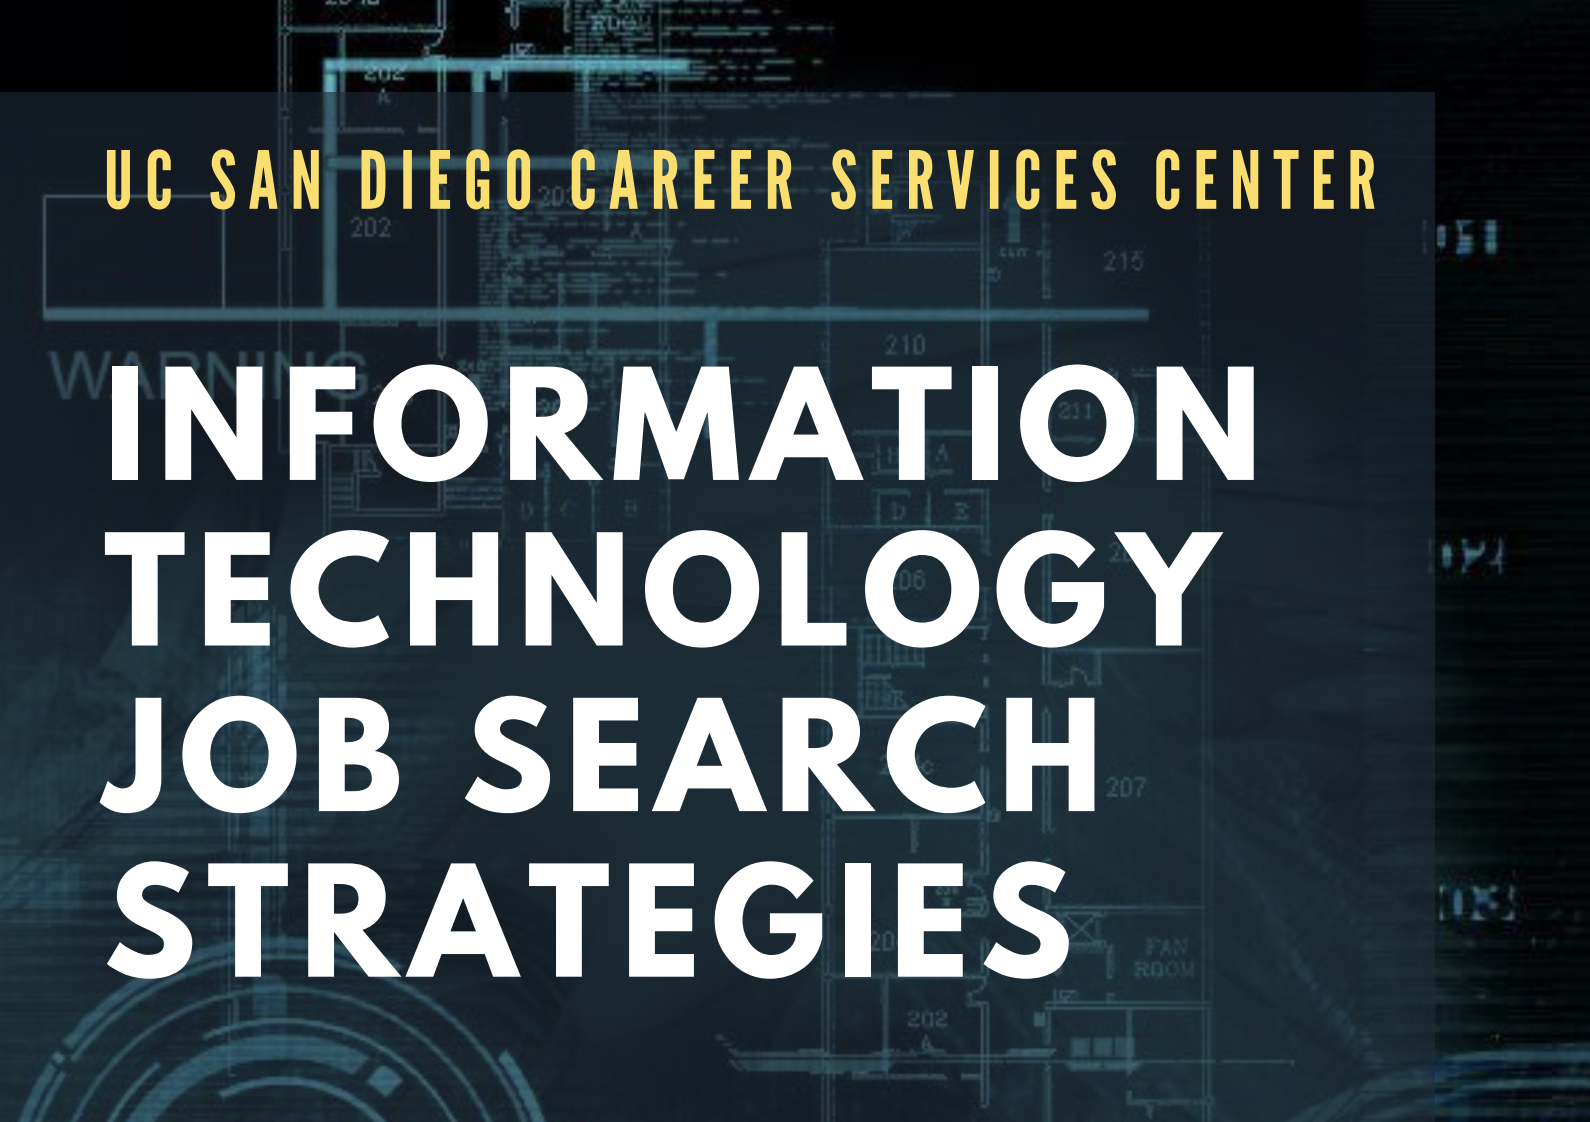 UCSD job search strategies information session with The Carrera Agency